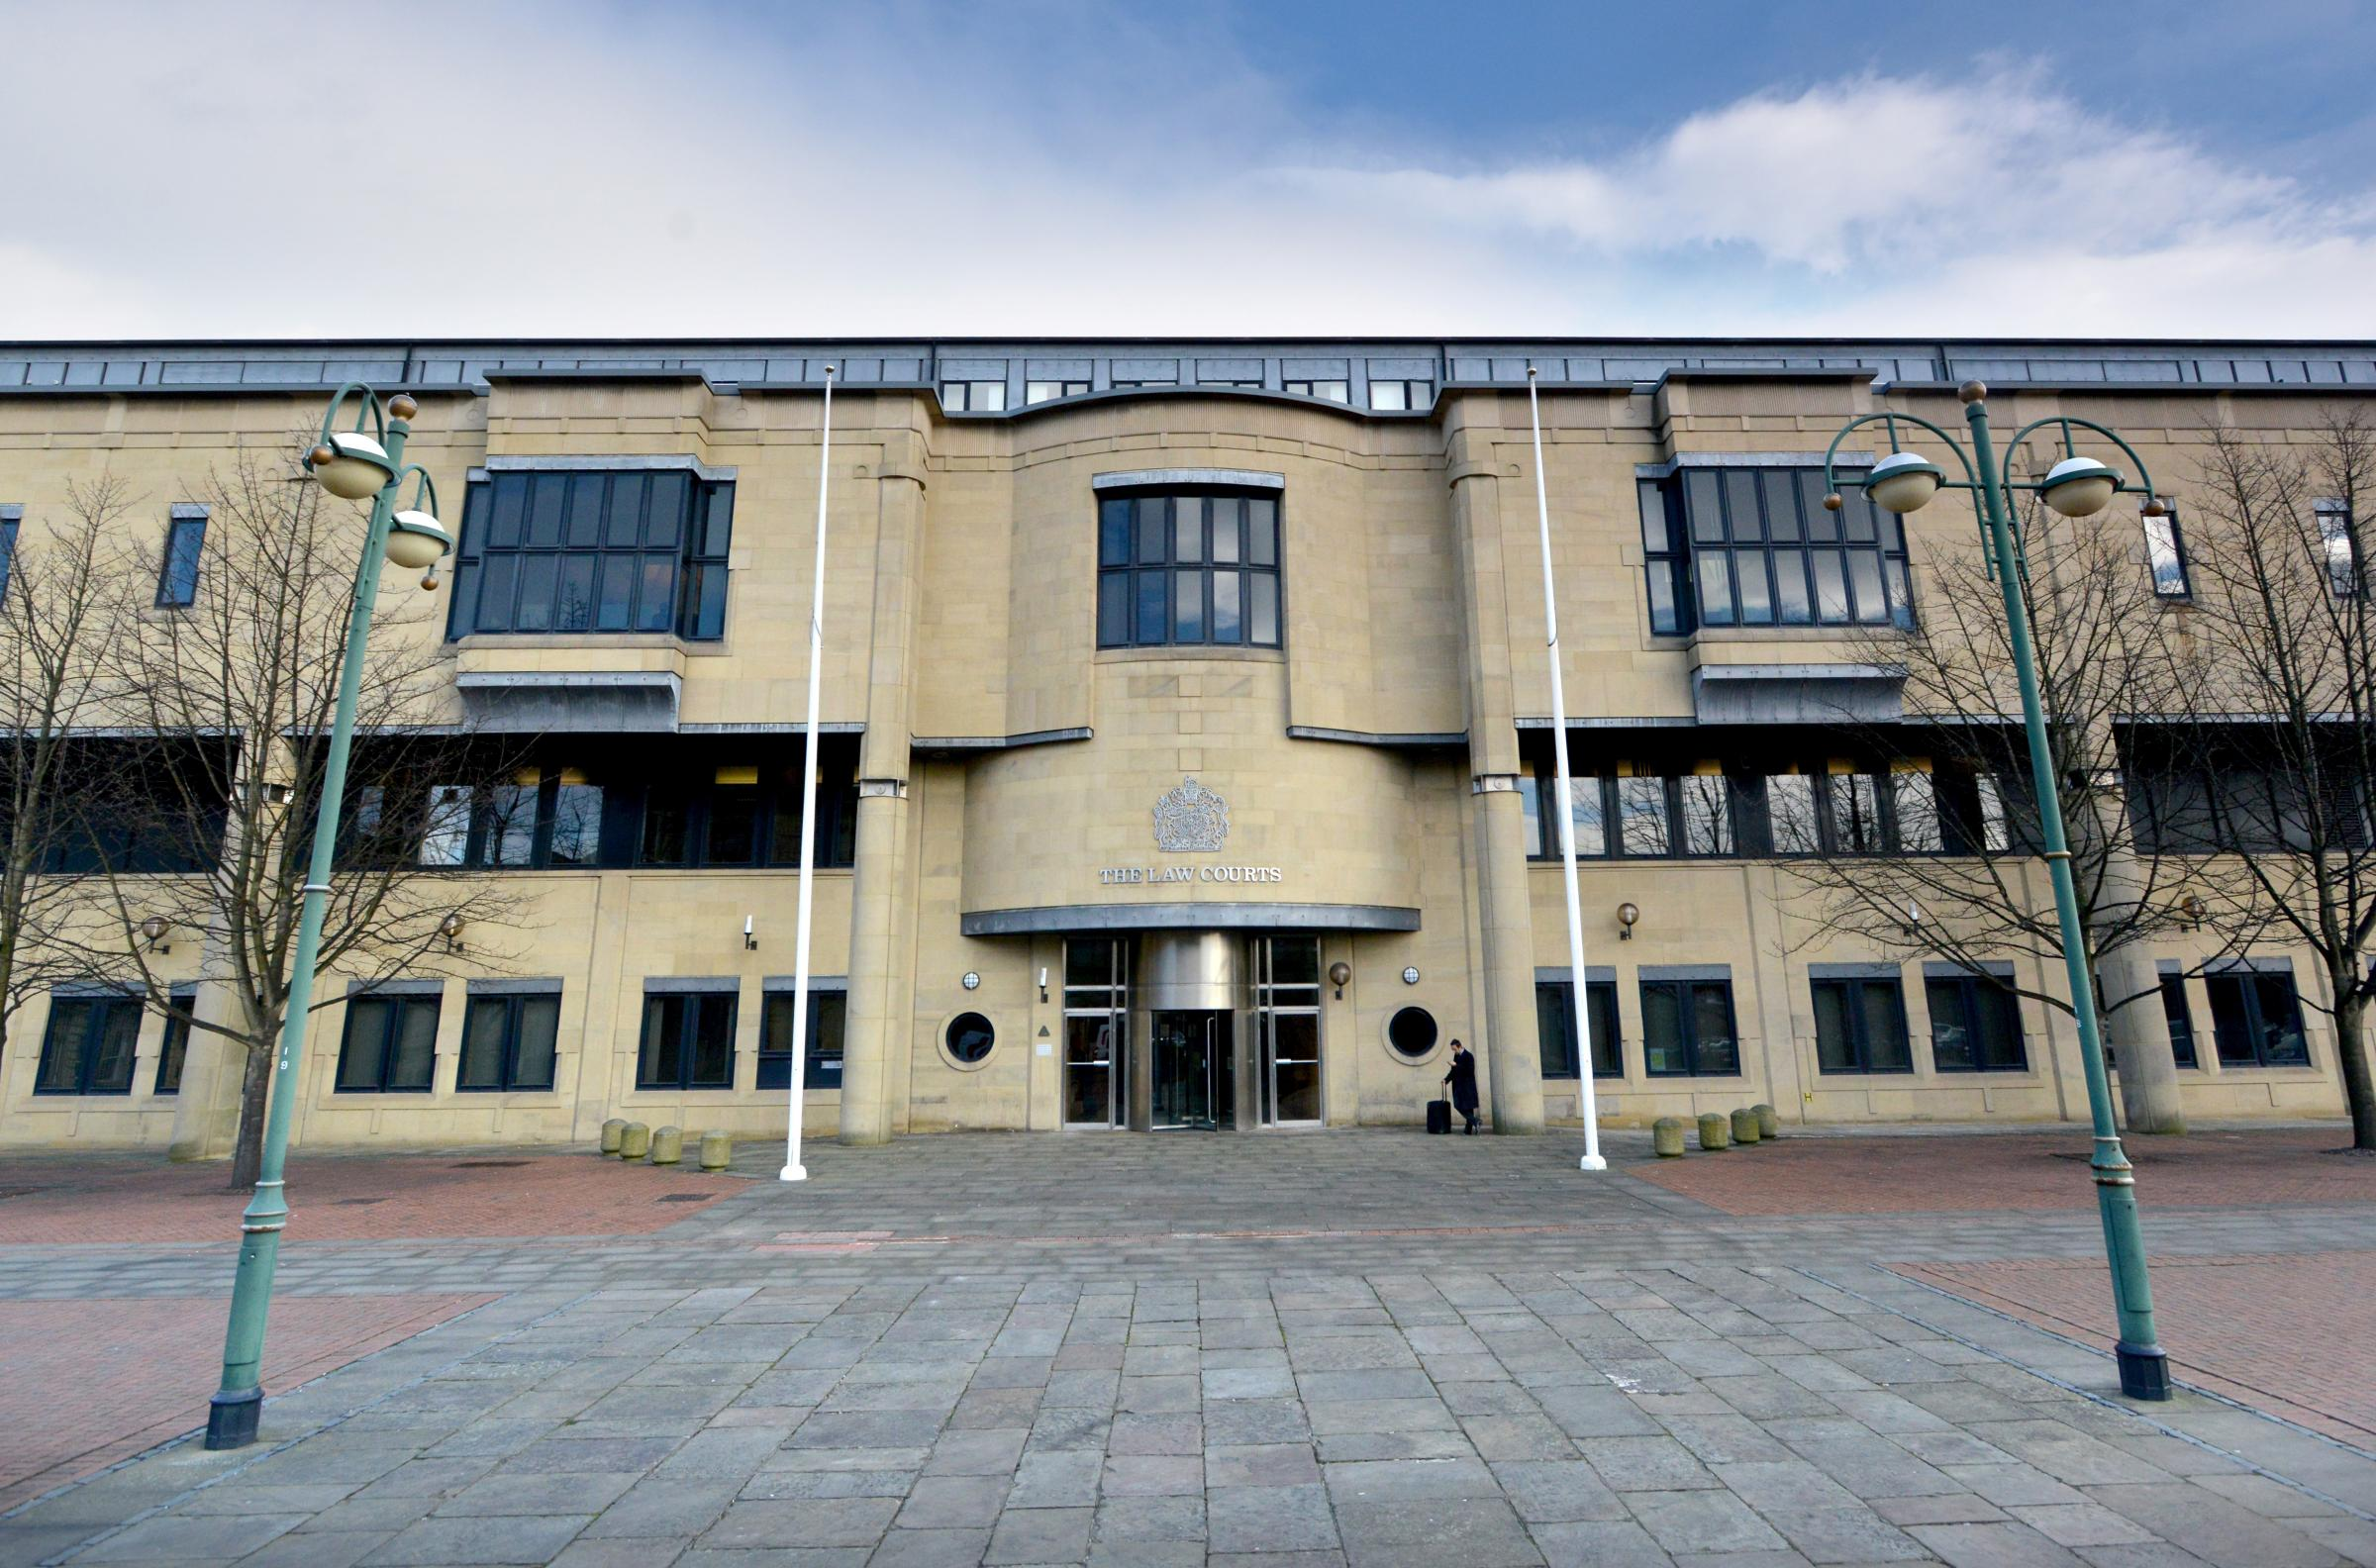 Richardson and Gott were back before Bradford Crown Court for breaching their suspended sentence orders